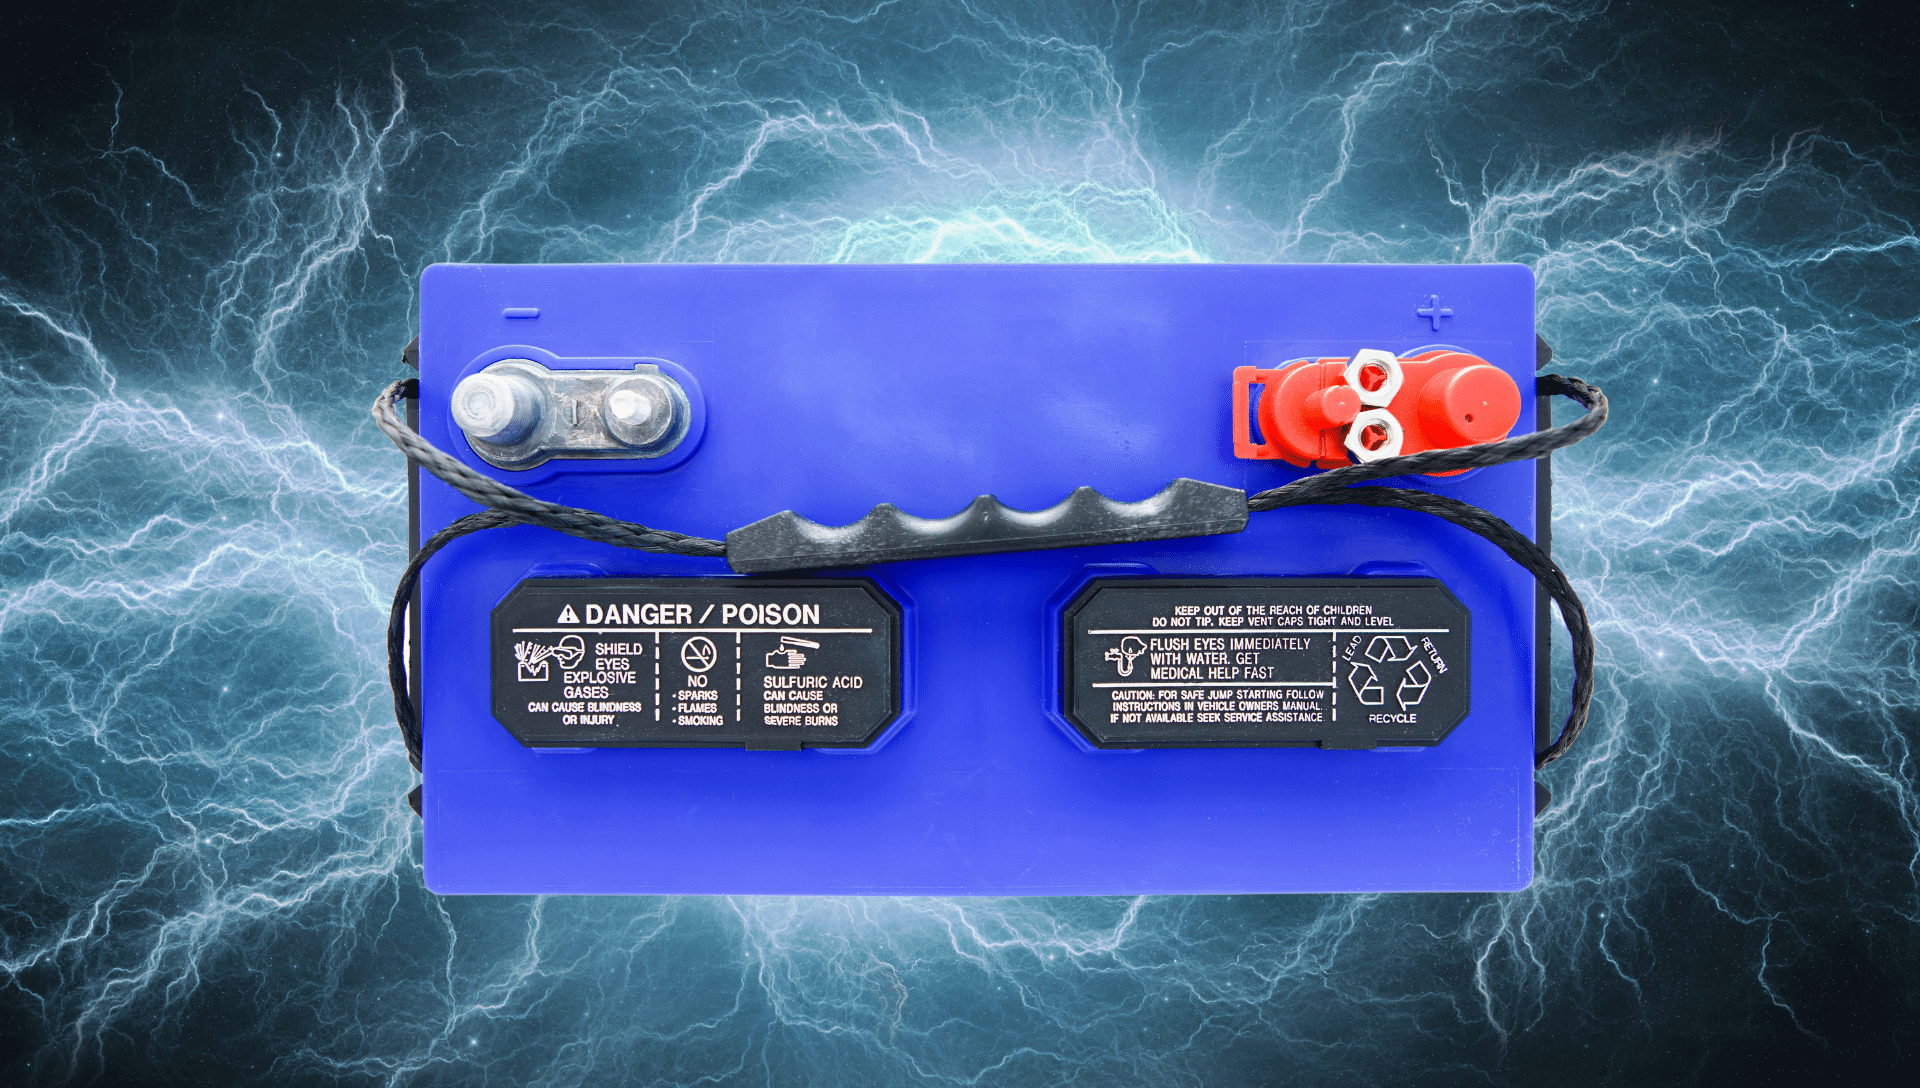 An RV battery is shown from the top view with blue electricity on a black background.